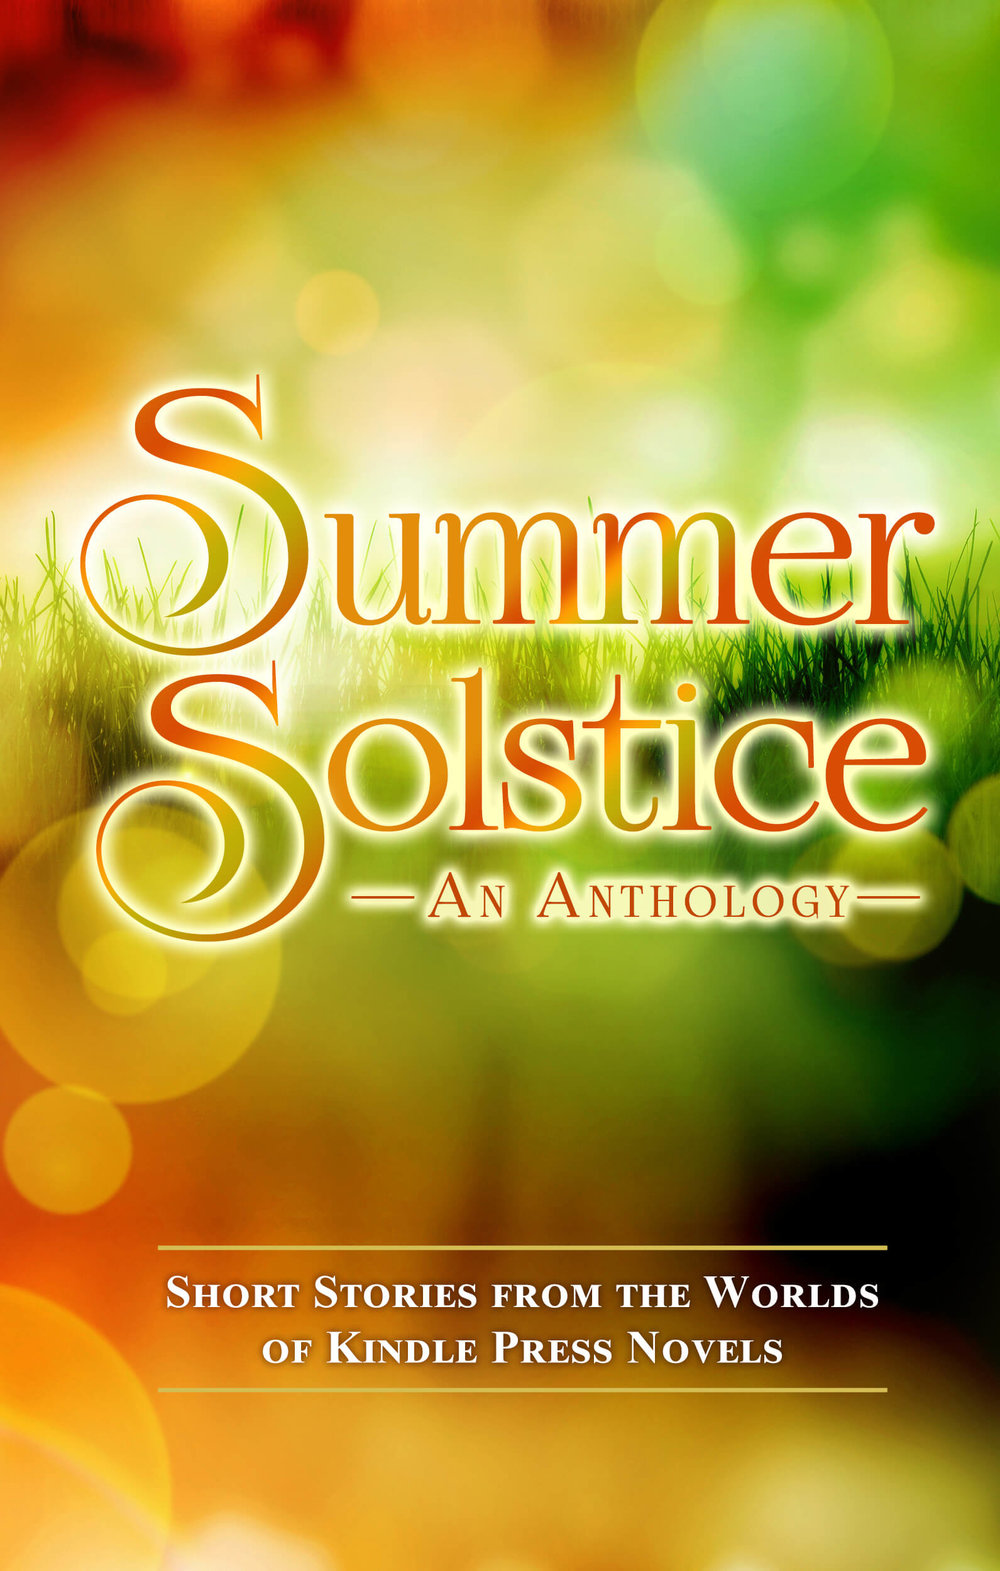 Summer Solstice - Beat those summertime doldrums with some short works by Kindle Press Authors! More stories from the worlds of Kindle Press Authors! There are over twenty-five stories in this anthology telling stories in and around their published books, and whether you are an old fan or just want to give some new authors a try, then this is the collection for you!So pick up your copy today and come along for some intense journeys into the heart of these worlds. Who knows: you might just find your next favorite author!